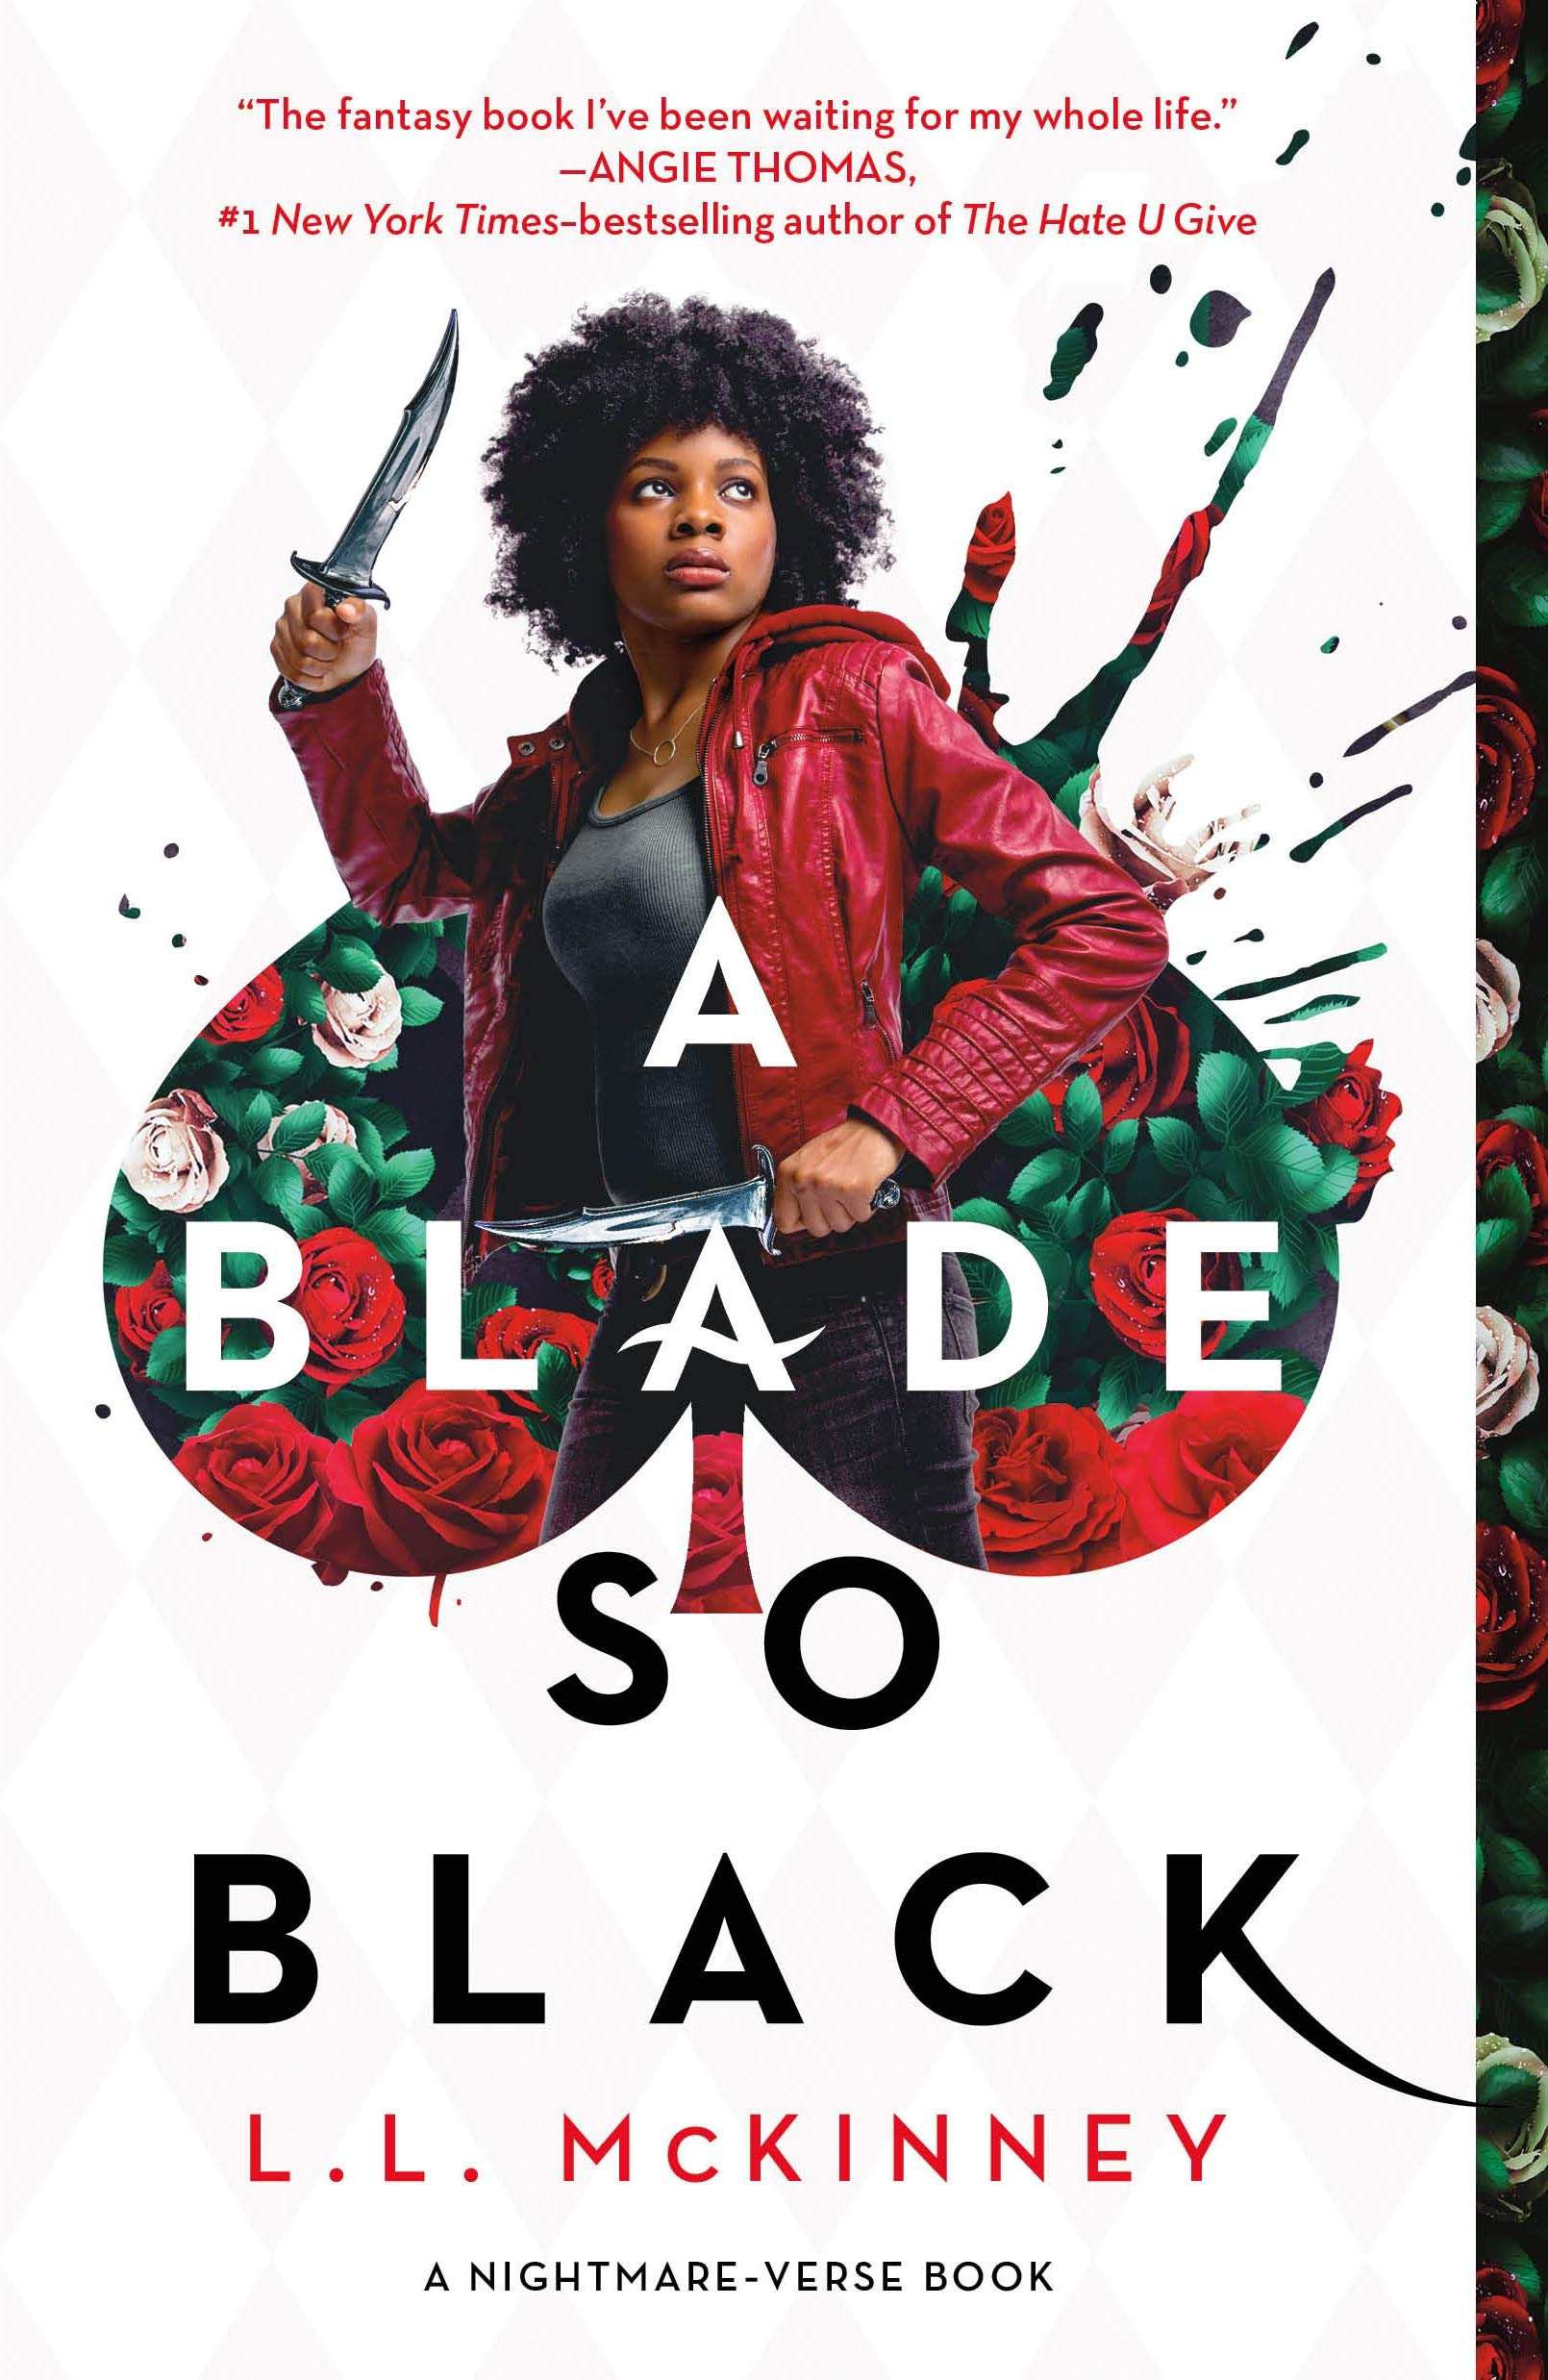 A young Black woman holding two knives erupts out of a spade made of roses